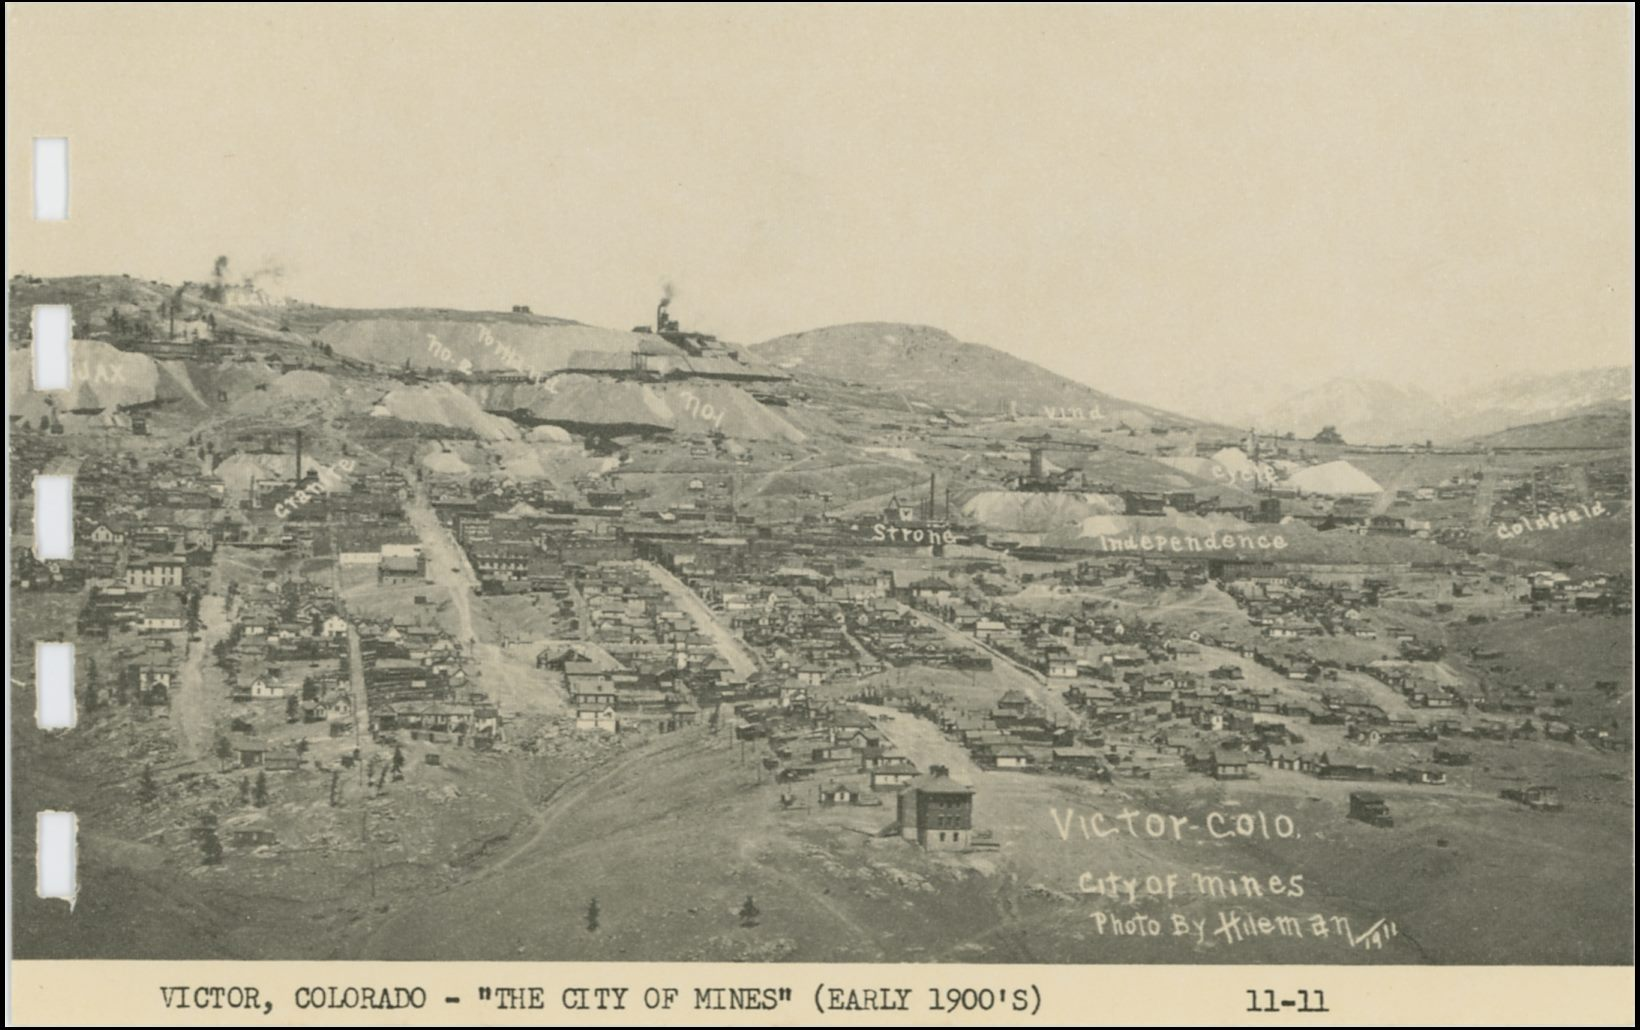 This view of Victor is looking north from Straub Mountain area. Photographed in 1911 by the Hileman as the view is credited to. Being this is from a printed card in a small more modern postcard folder it is not the greatest quality, but one gets an idea of the town and the many mines in and around it. In addition, in this view they are marked out, even if there is at least one error in that marking. * In upper left quadrangle is the Portland No. 1 & No. 2 marked out, but the location of the No. 2 shaft of the Portland is NOT where this image gives it! Portland No. 2 shaft is in this view above the No. 1 shaft, seen a little left of the center of this view sideways. No. 2 Shaft of Portland is seen against the sky with No. 1 just below it, with the huge dumps where No.1 is written. The Granite, original shaft, is located where this card has written the No.2 text. * Just behind and left of the huge smokestack of the Gold Coin shaft, marked in this view as Granite, is the main shaft of the Dead Pine. The dump is much easier seen then the mine itself.